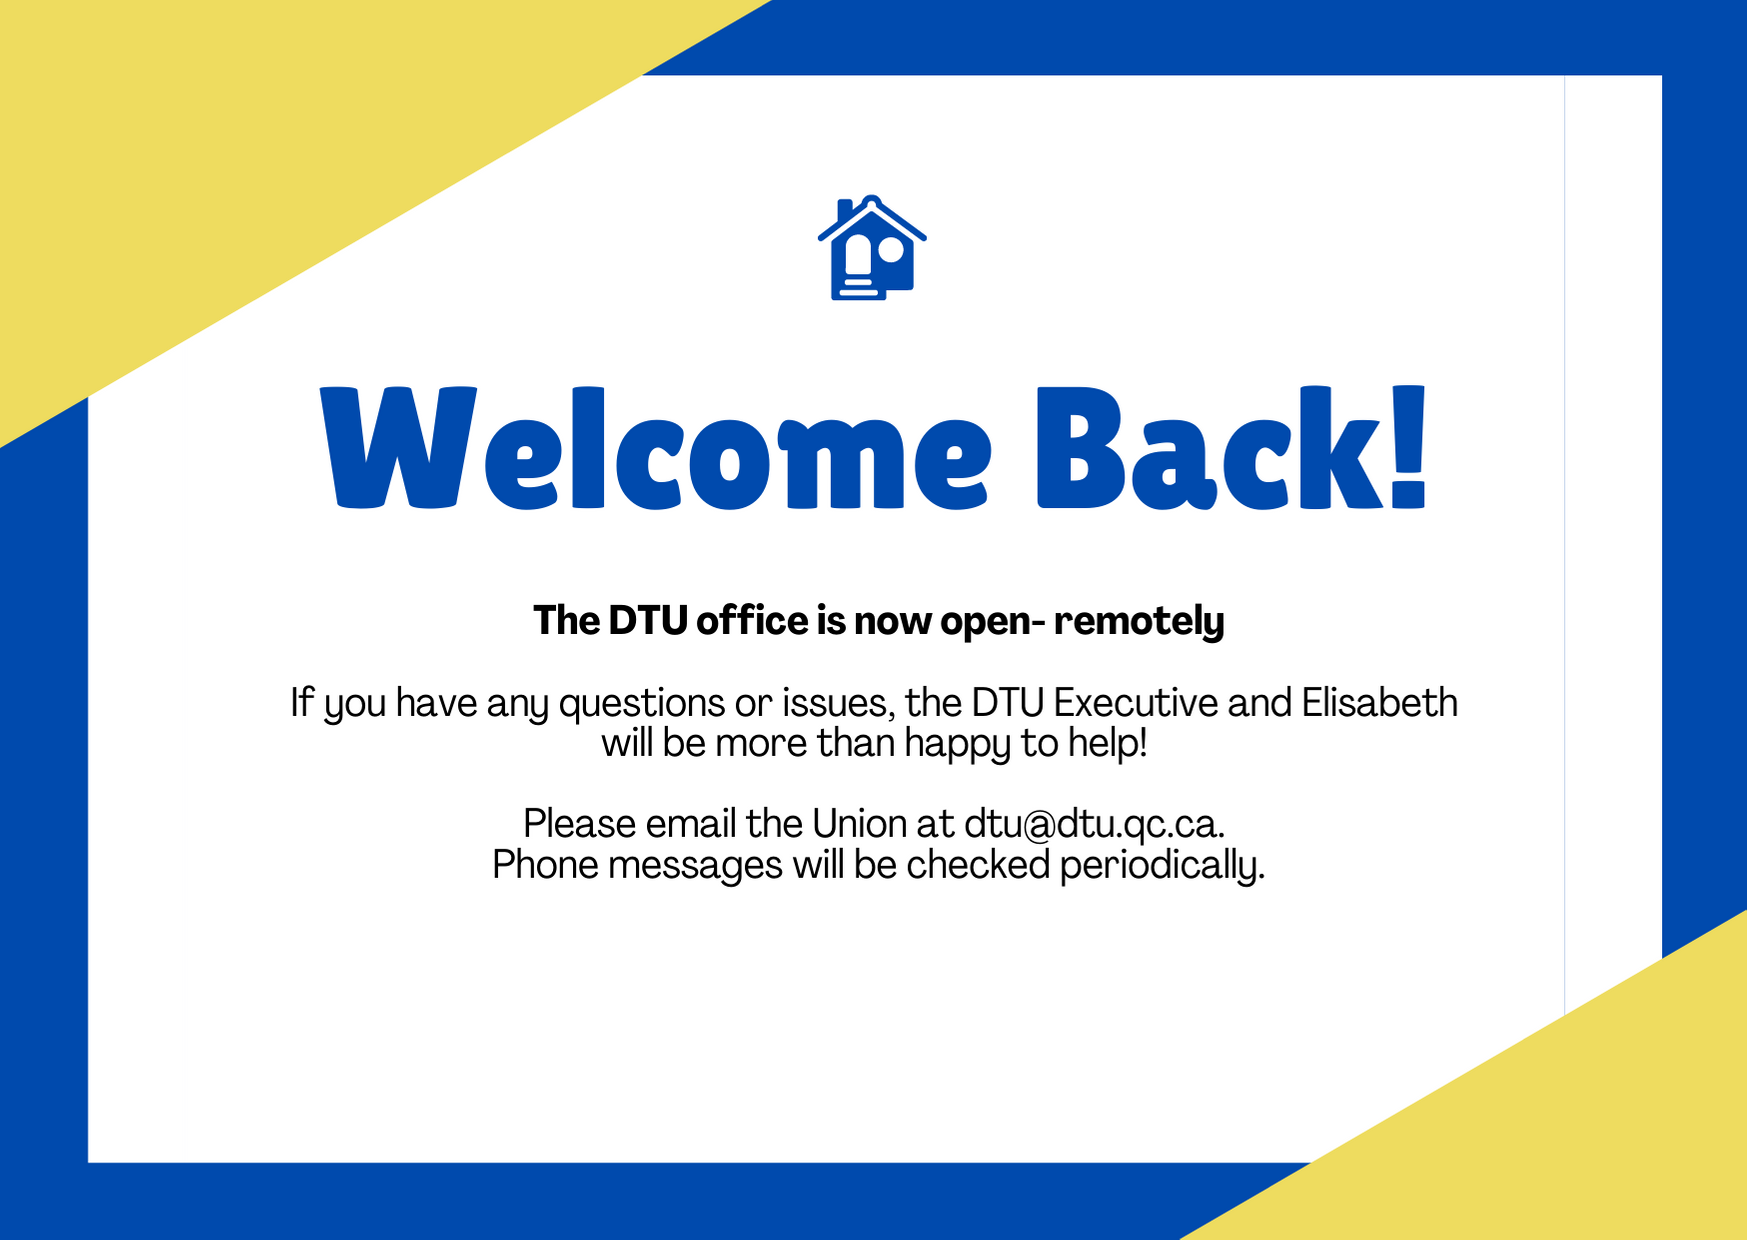 Welcome back! The office is open remotely. Please email us at dtu@dtu.qc.ca